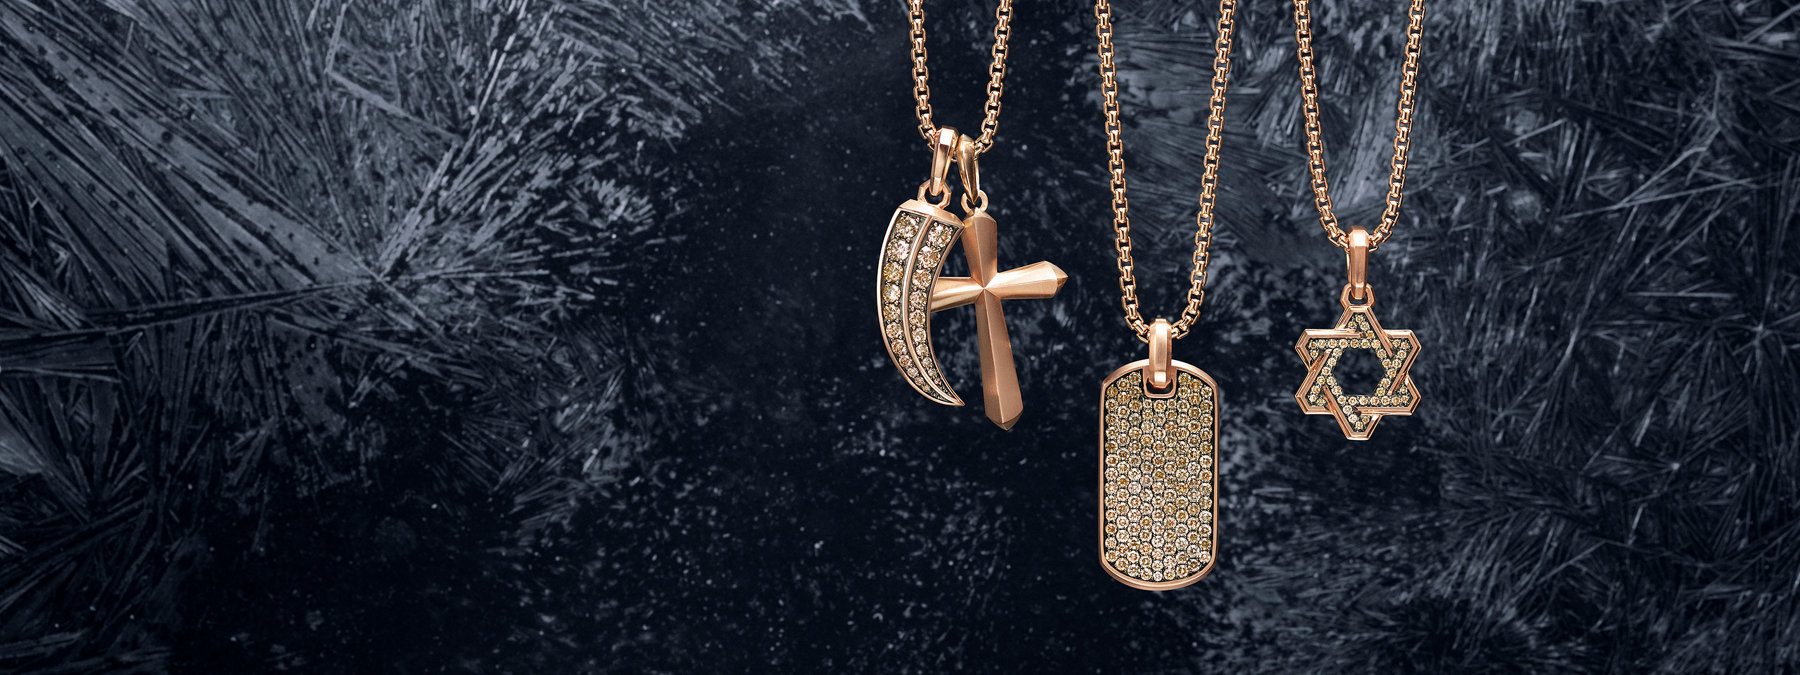 A color photograph shows three David Yurman men's box-chain necklaces in 18K rose gold arranged in a row atop a dark, scratched, snow-dusted icy surface. Each necklace is strung with one or two David Yurman men's amulets crafted from 18K rose gold. From left is a Roman claw with pavé cognac diamonds, a Roman cross, a Pavé tag with pavé cognac diamonds, and a Deco Star of David with pavé cognac diamonds.